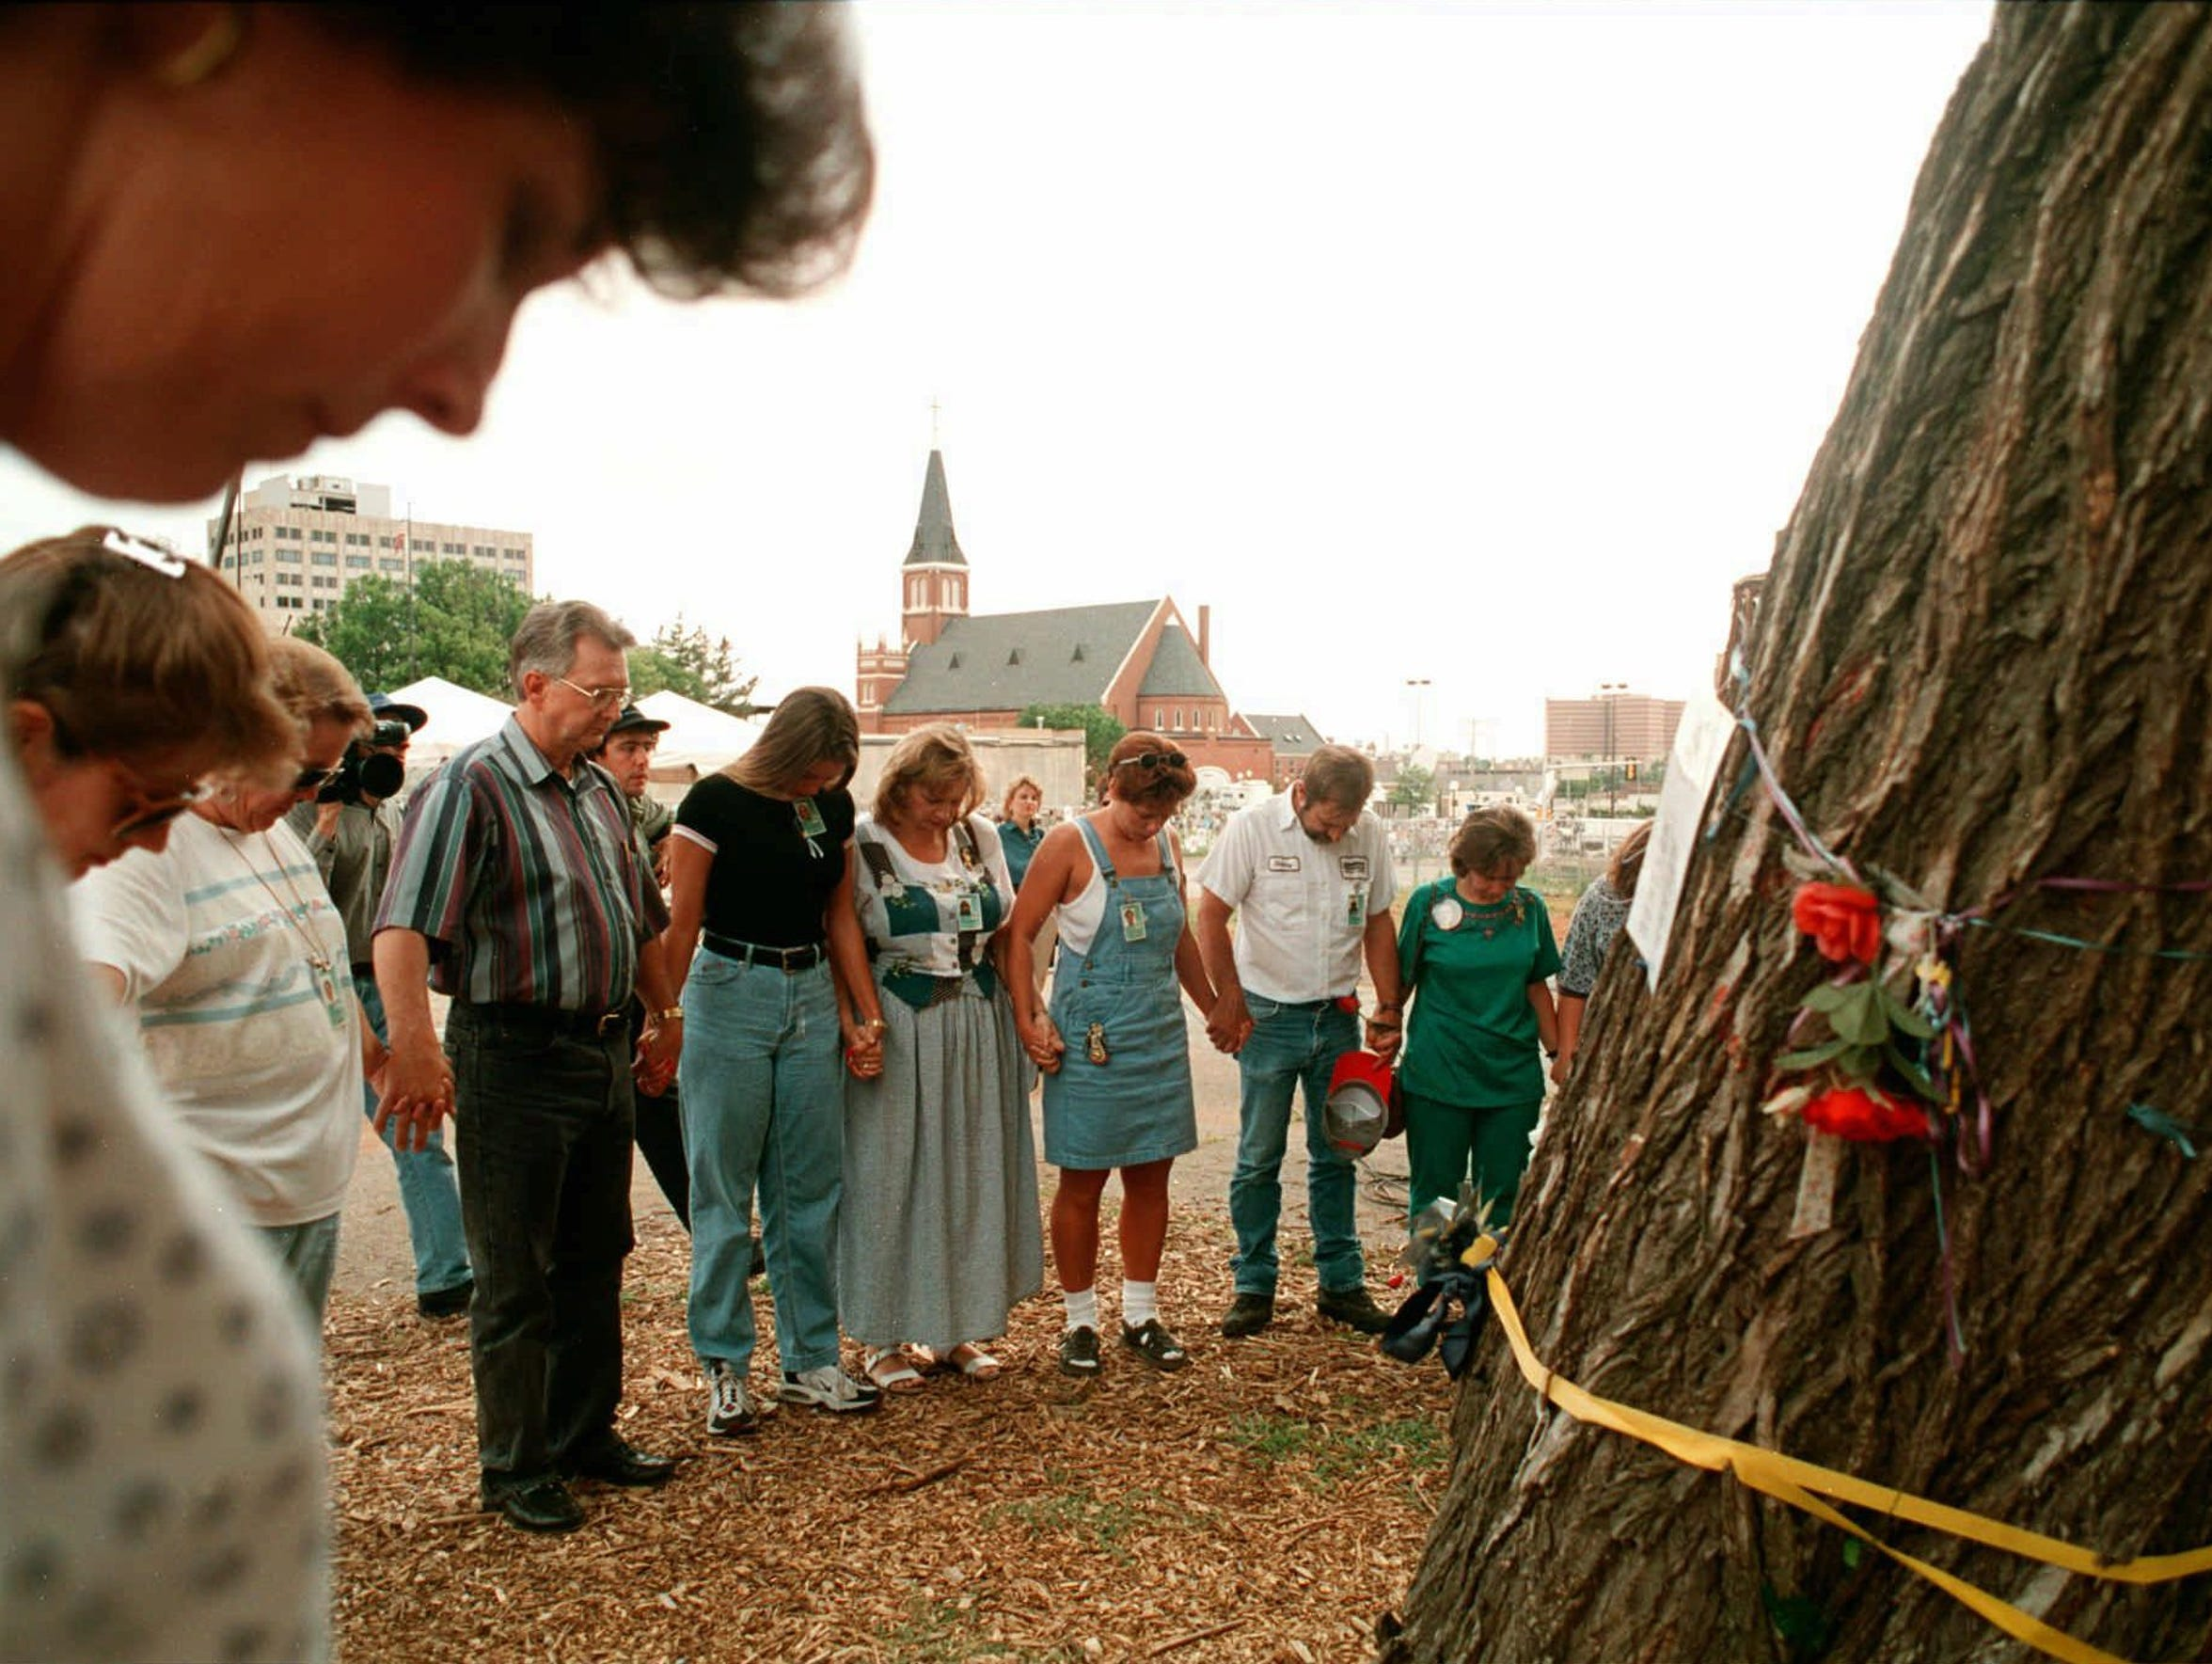 Oklahoma City bombing survivors and family members